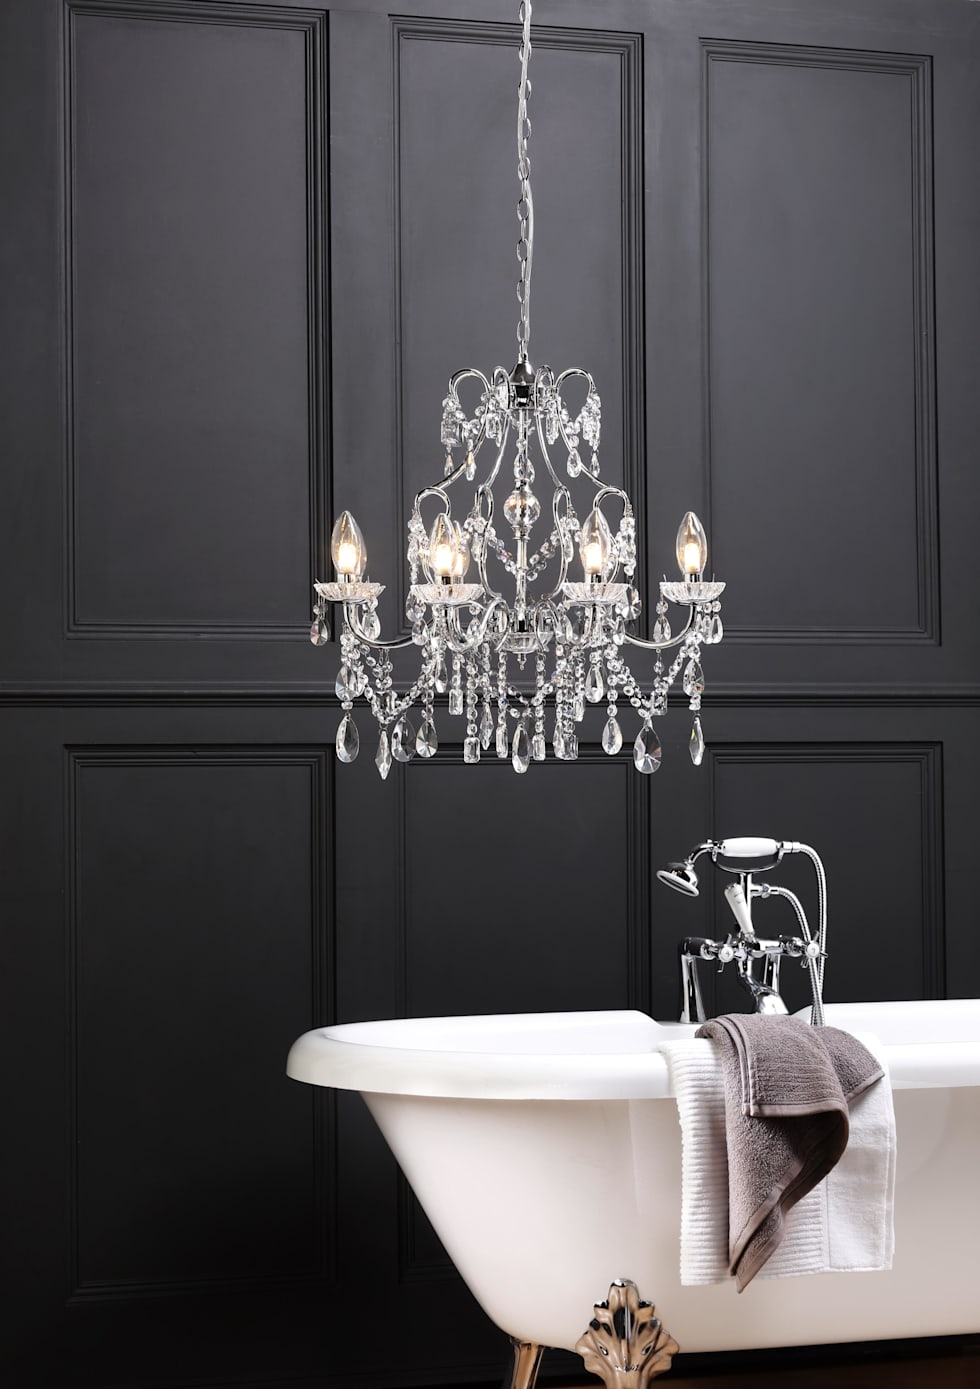 Interior Design Ideas Redecorating Remodeling Photos Homify - Chrome 5 light bathroom fixture